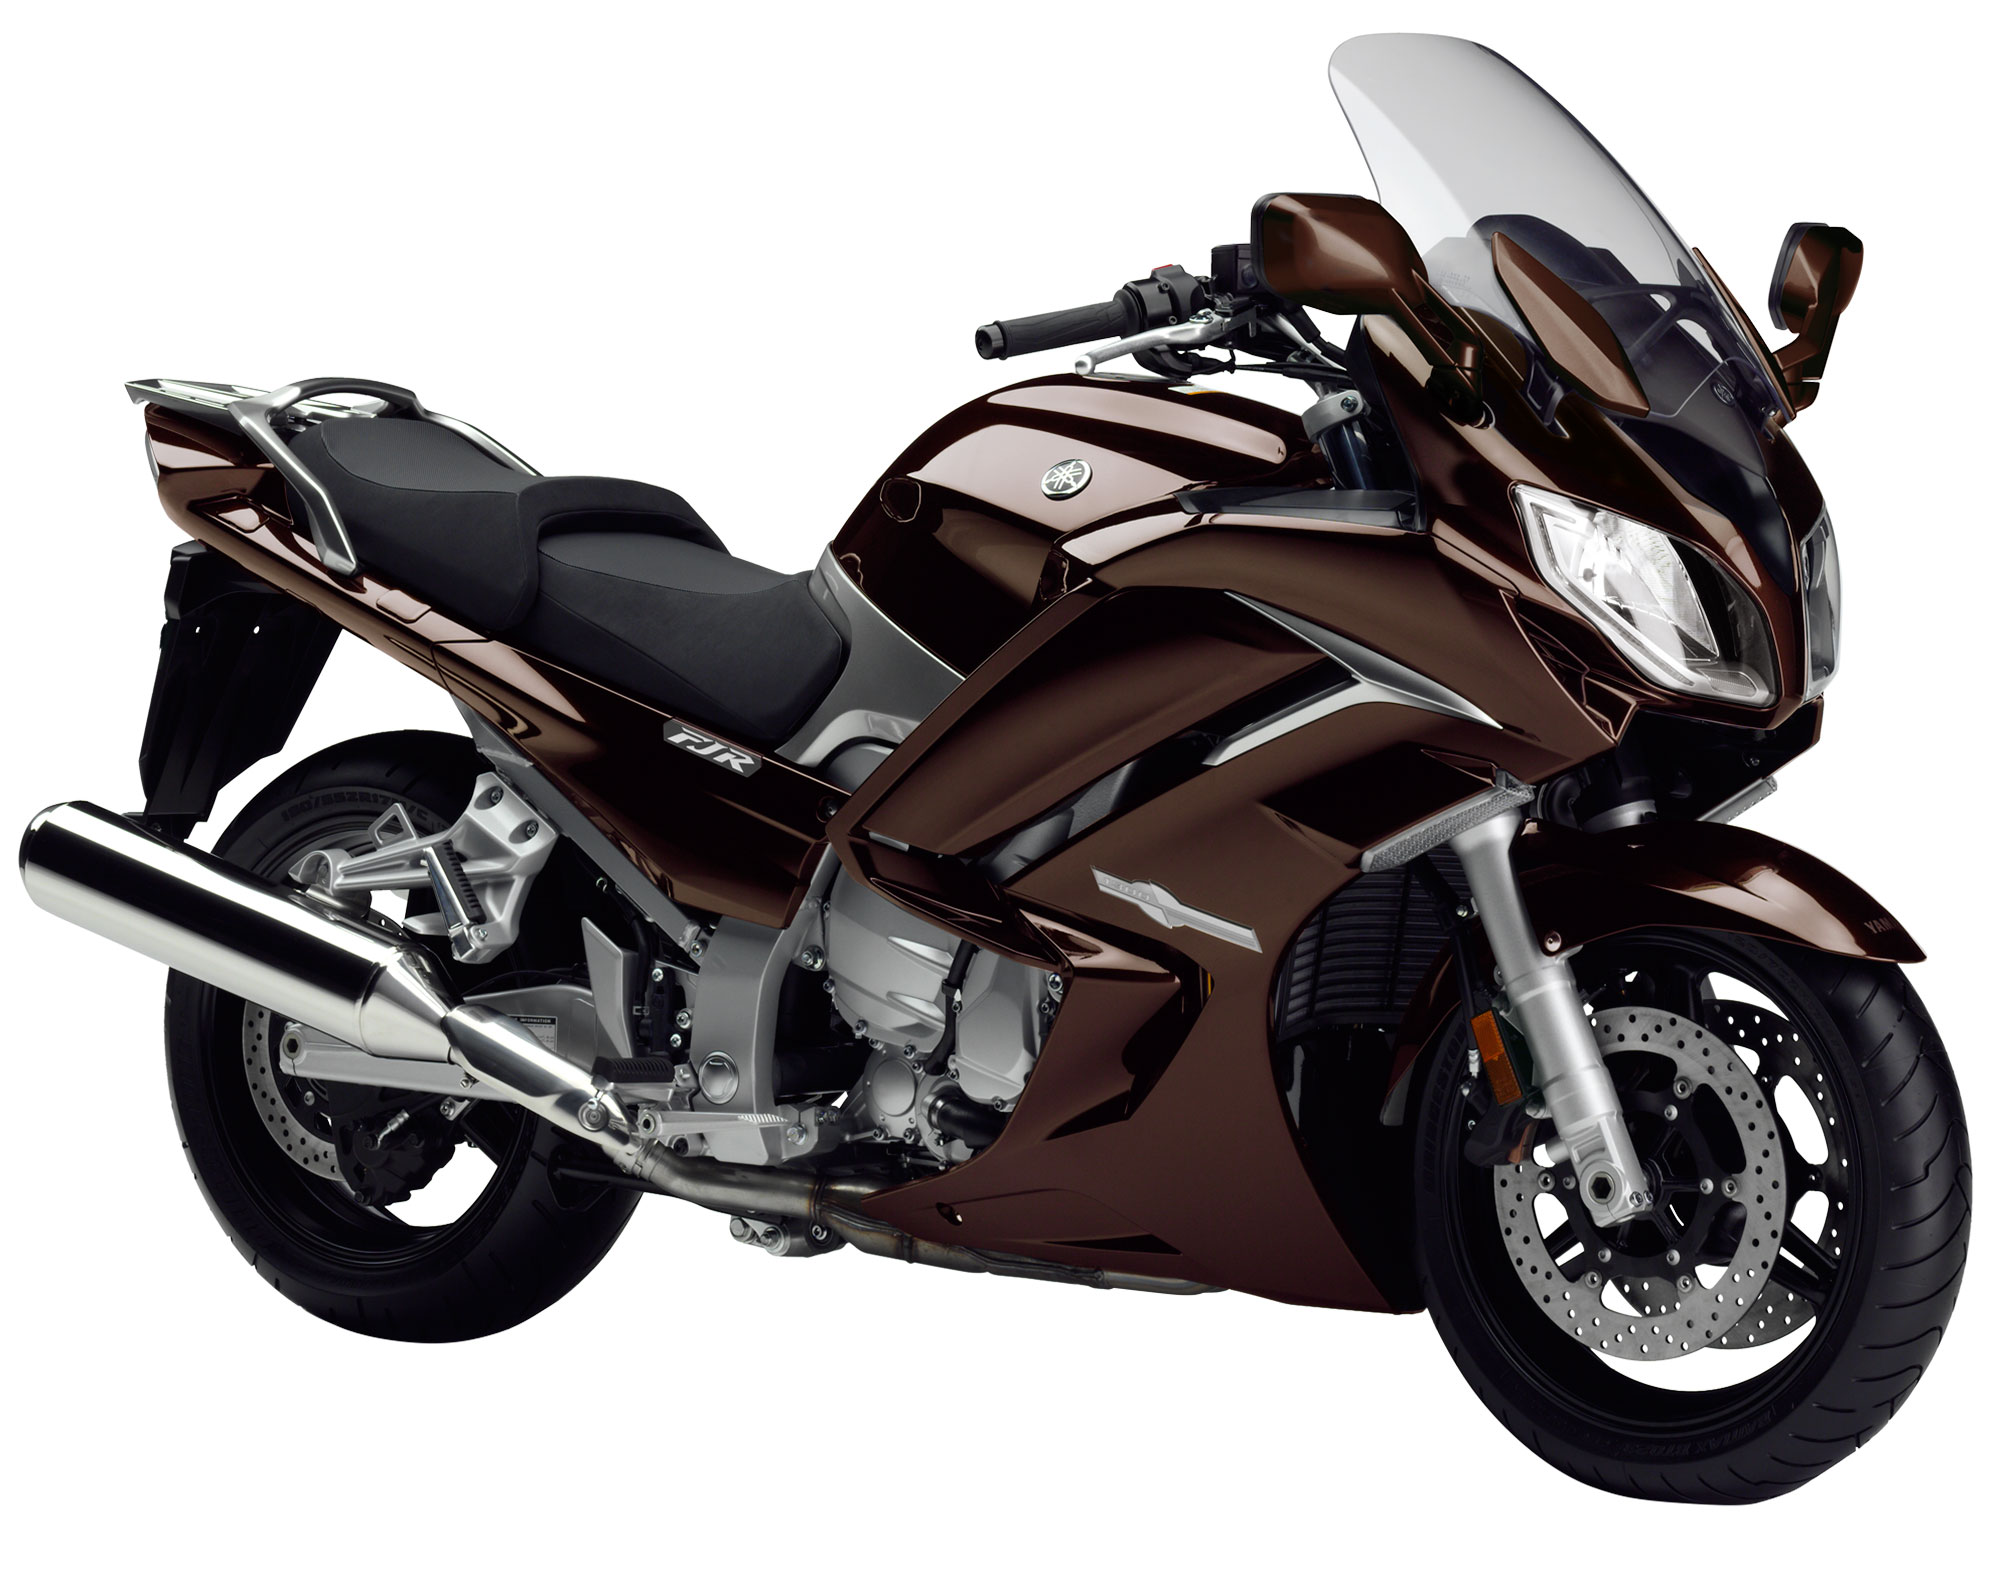 Yamaha FJR 1300 AS 2014 #1